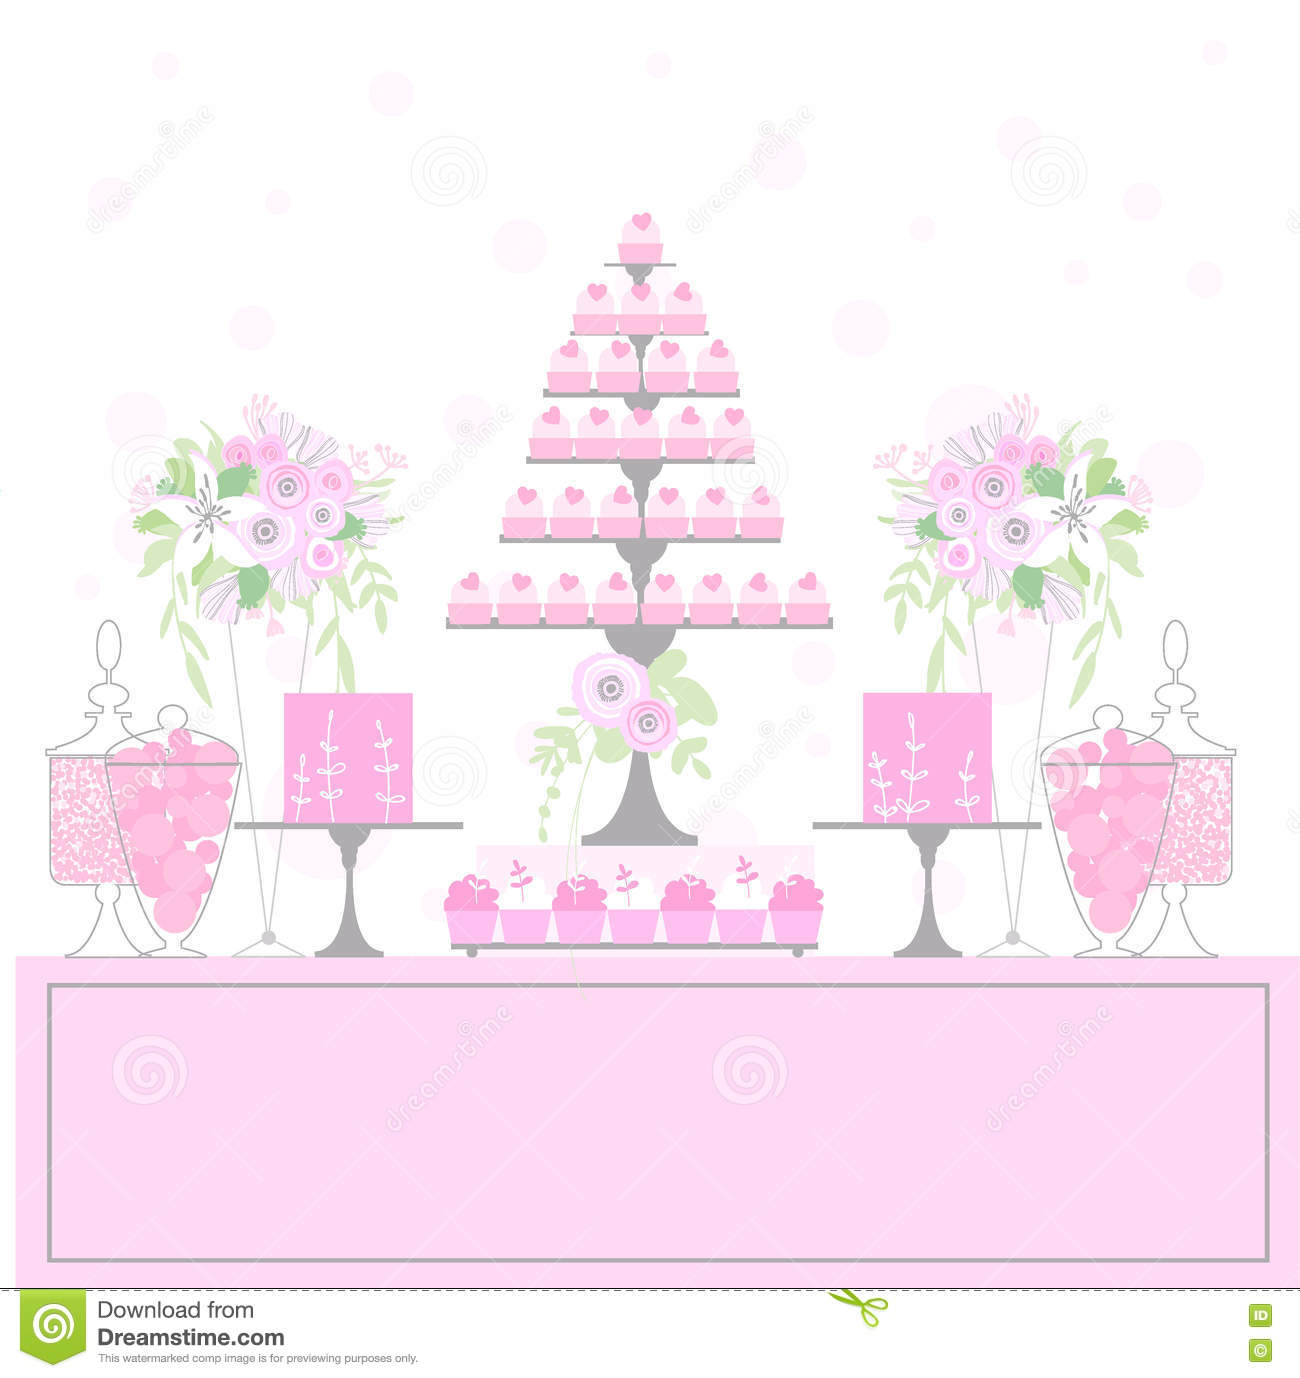 Sweet table with cupcakes stock vector illustration of donut wedding dessert bar with cake birthday sweet table candy buffet pink colors vector illustration watchthetrailerfo